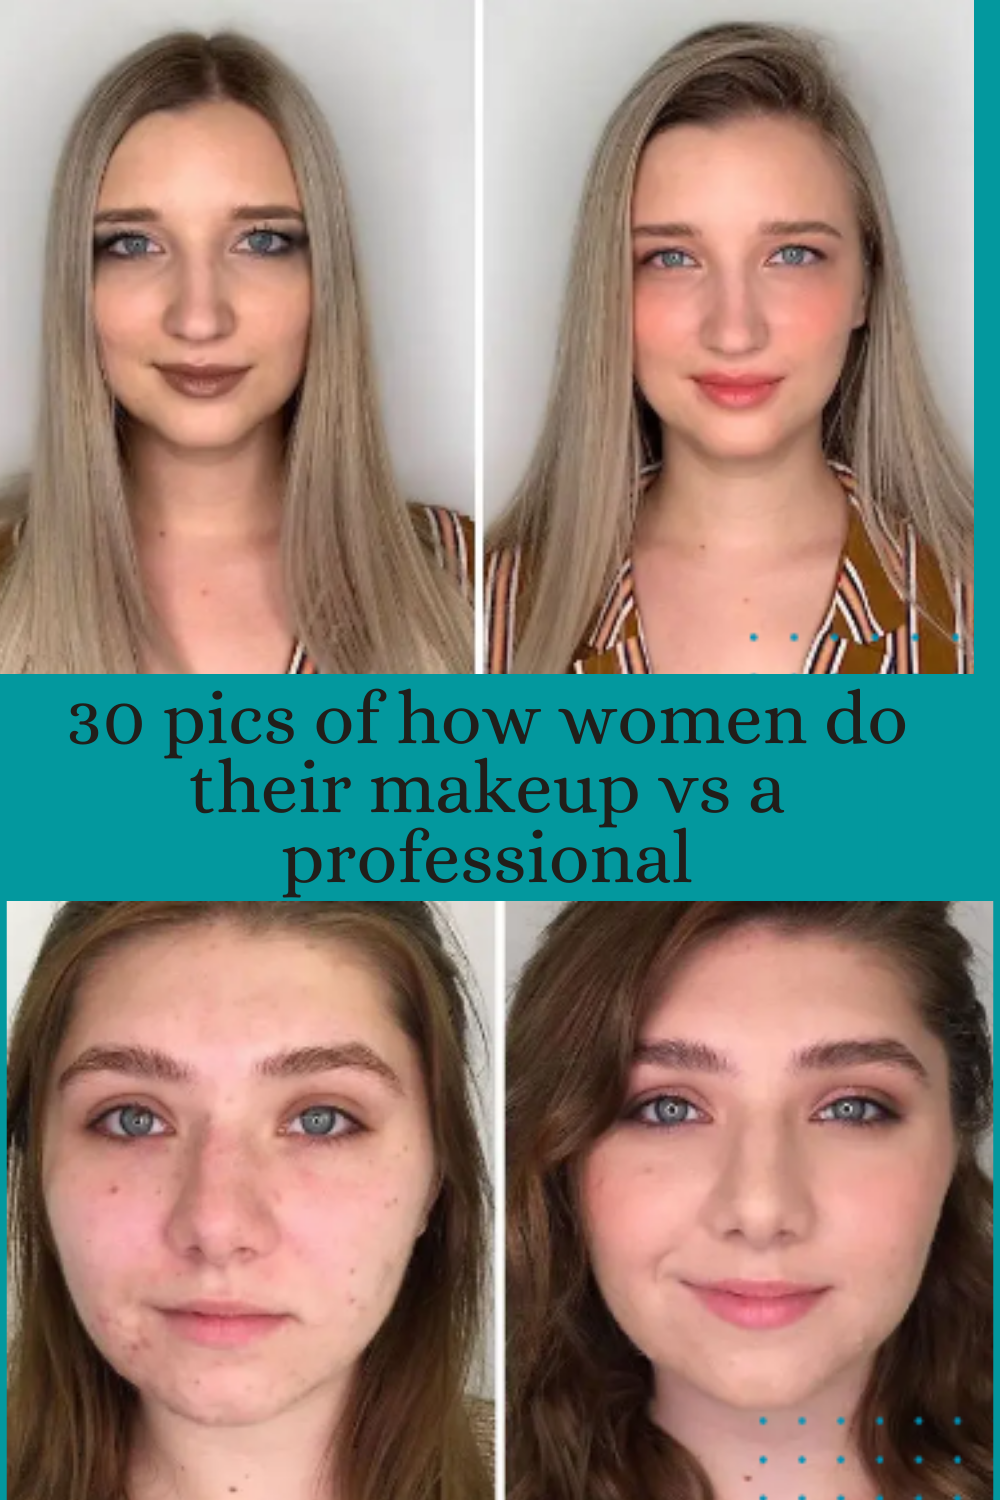 30 Pics Of How Women Do Their Makeup Vs A Professional In 2020 Putting On Makeup Makeup Amazing